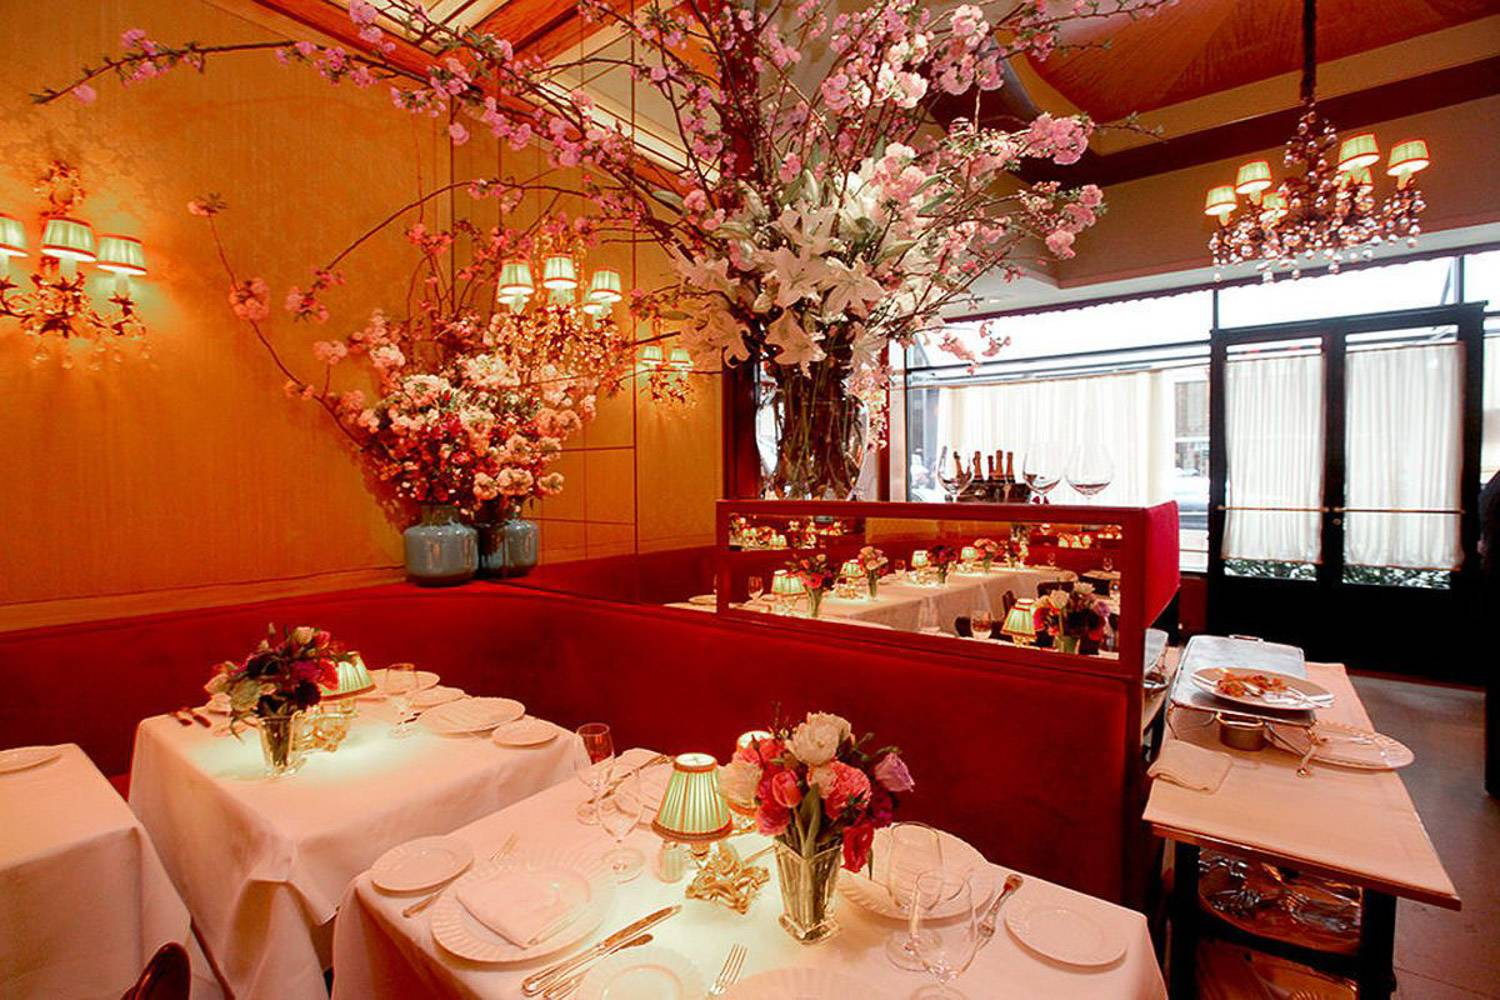 Image of the dining room of La Grenouille French restaurant in NYC decorated all in red with flowers and candles